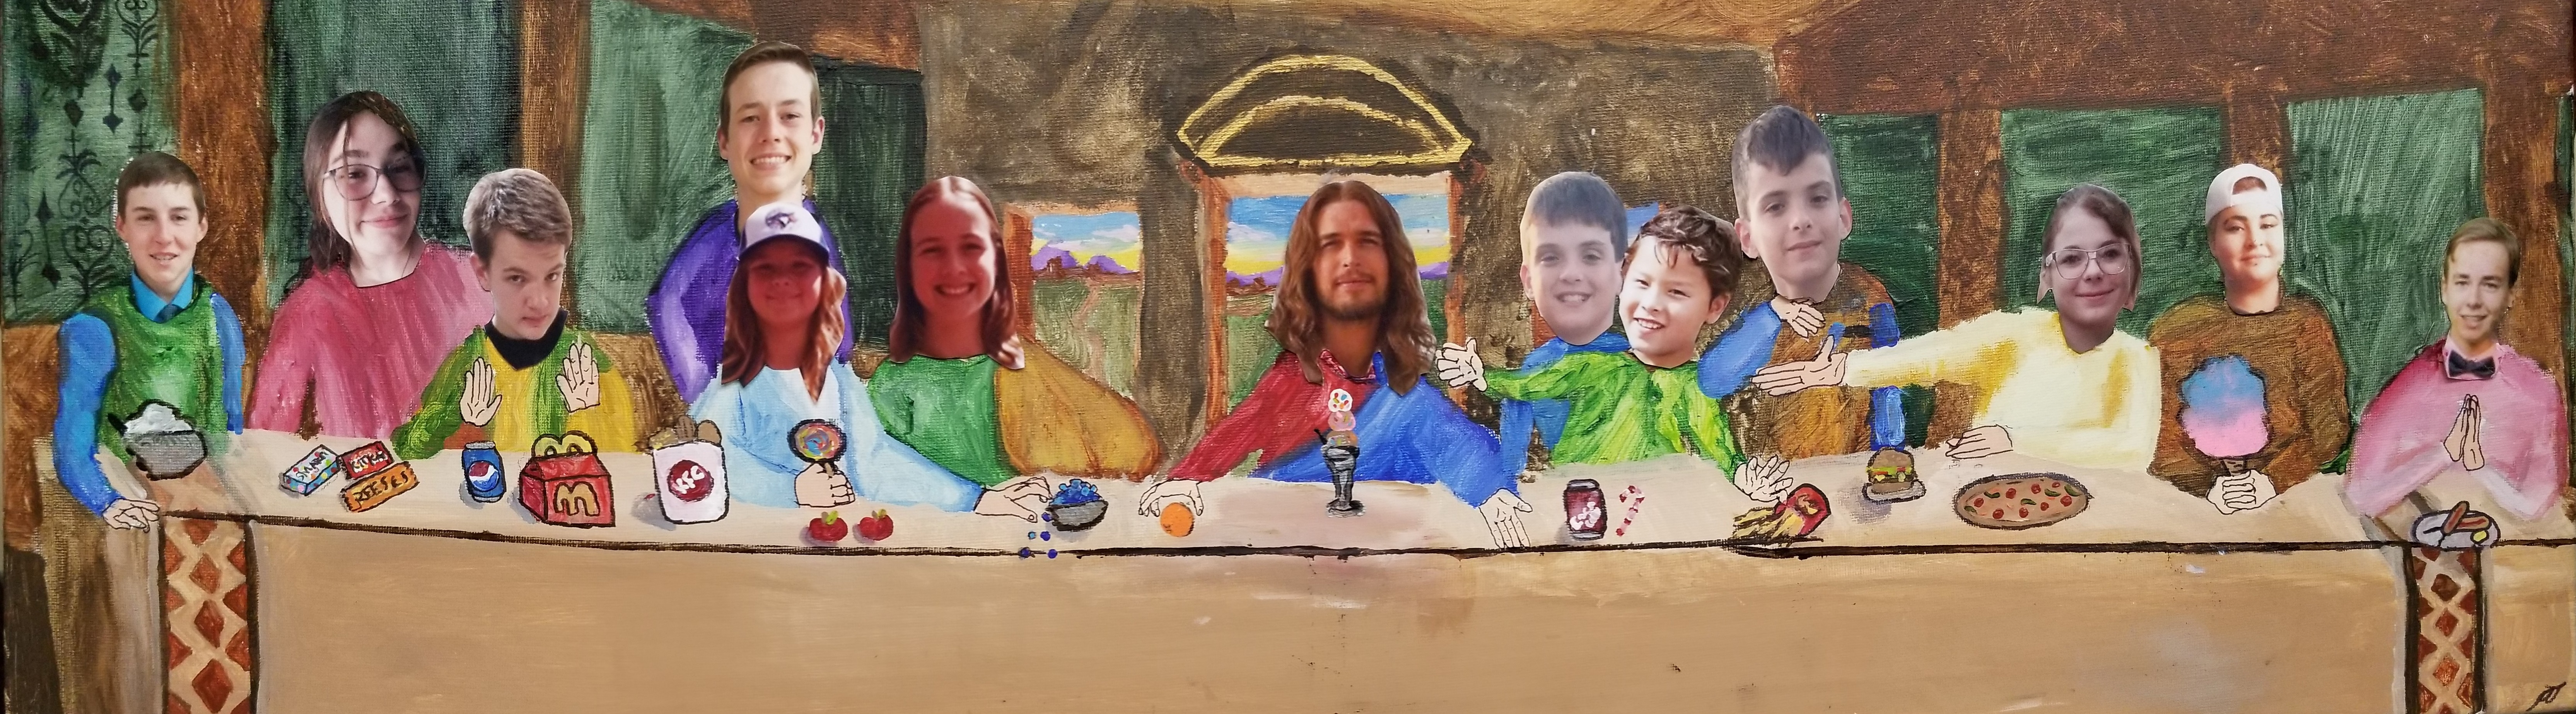 Last Supper - Youth - 2 - cropped.jpg